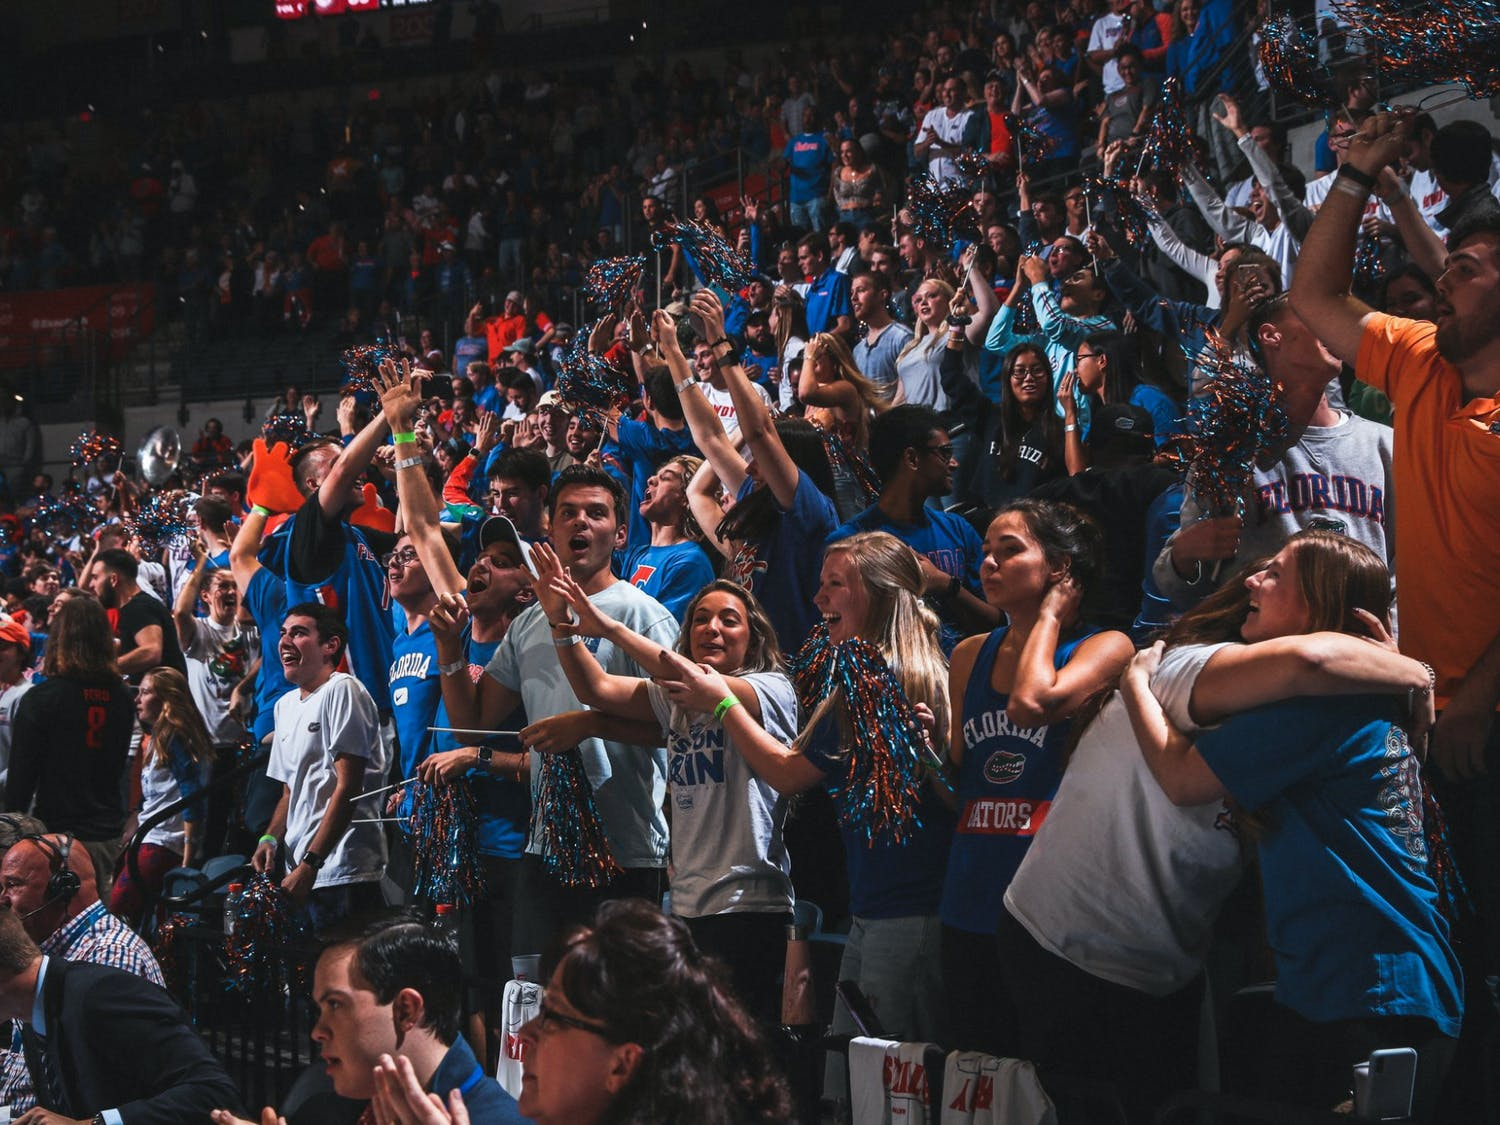 The student section is home to the Rowdy Reptiles, who ignite Florida home games' intense atmosphere.